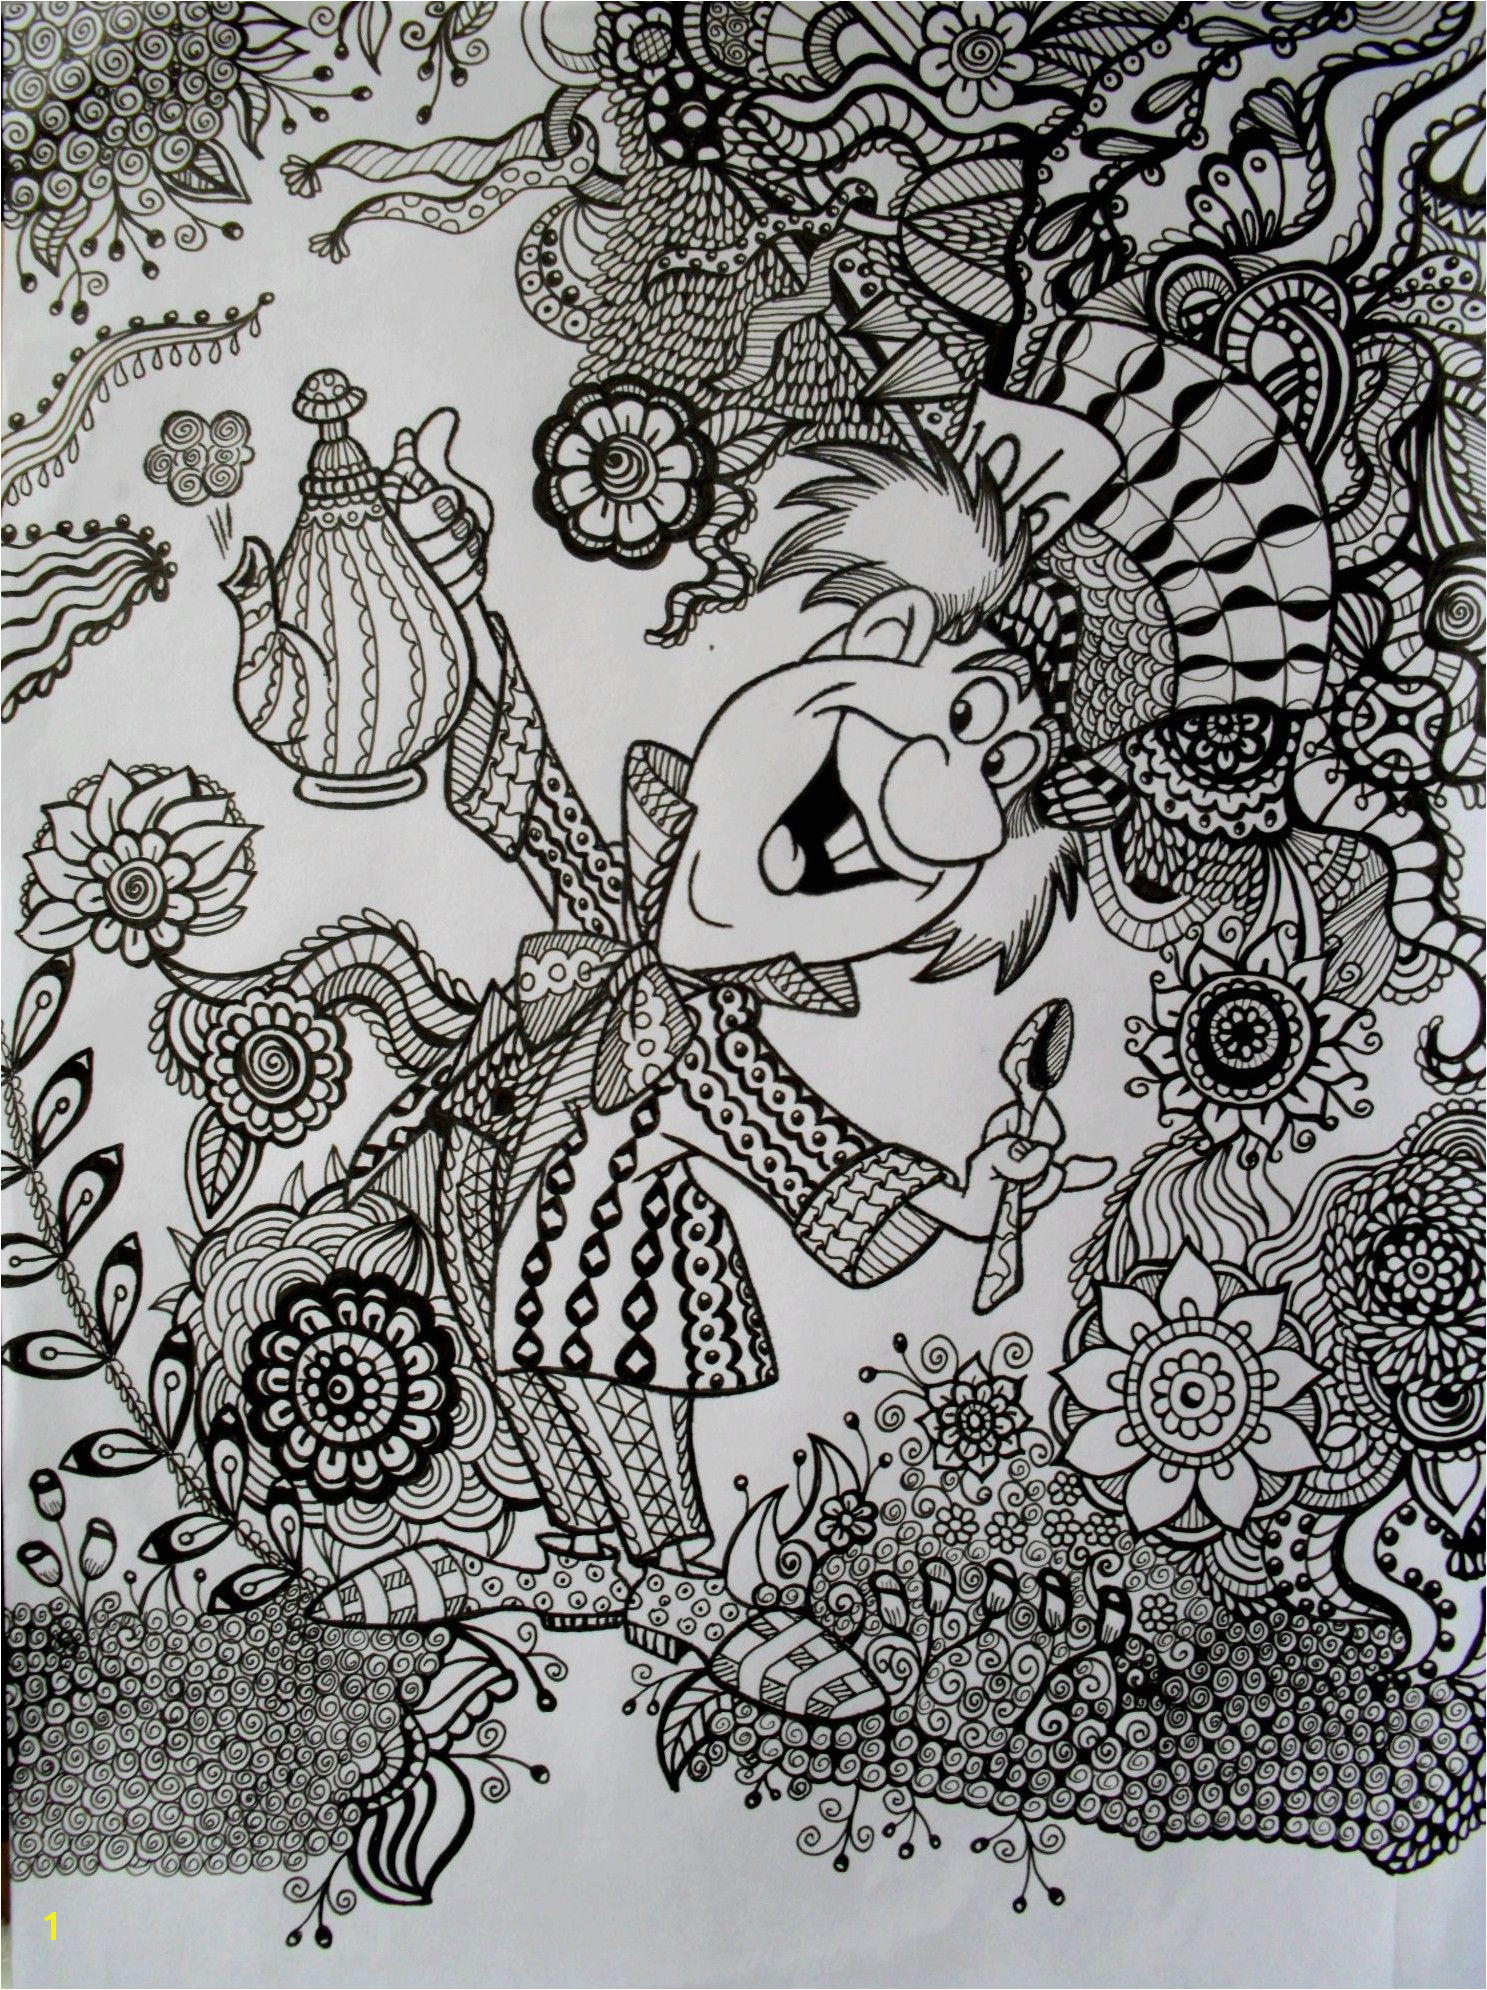 The Mad Hatter Coloring Pages To Print Coloring For Kids Adult Colouring In